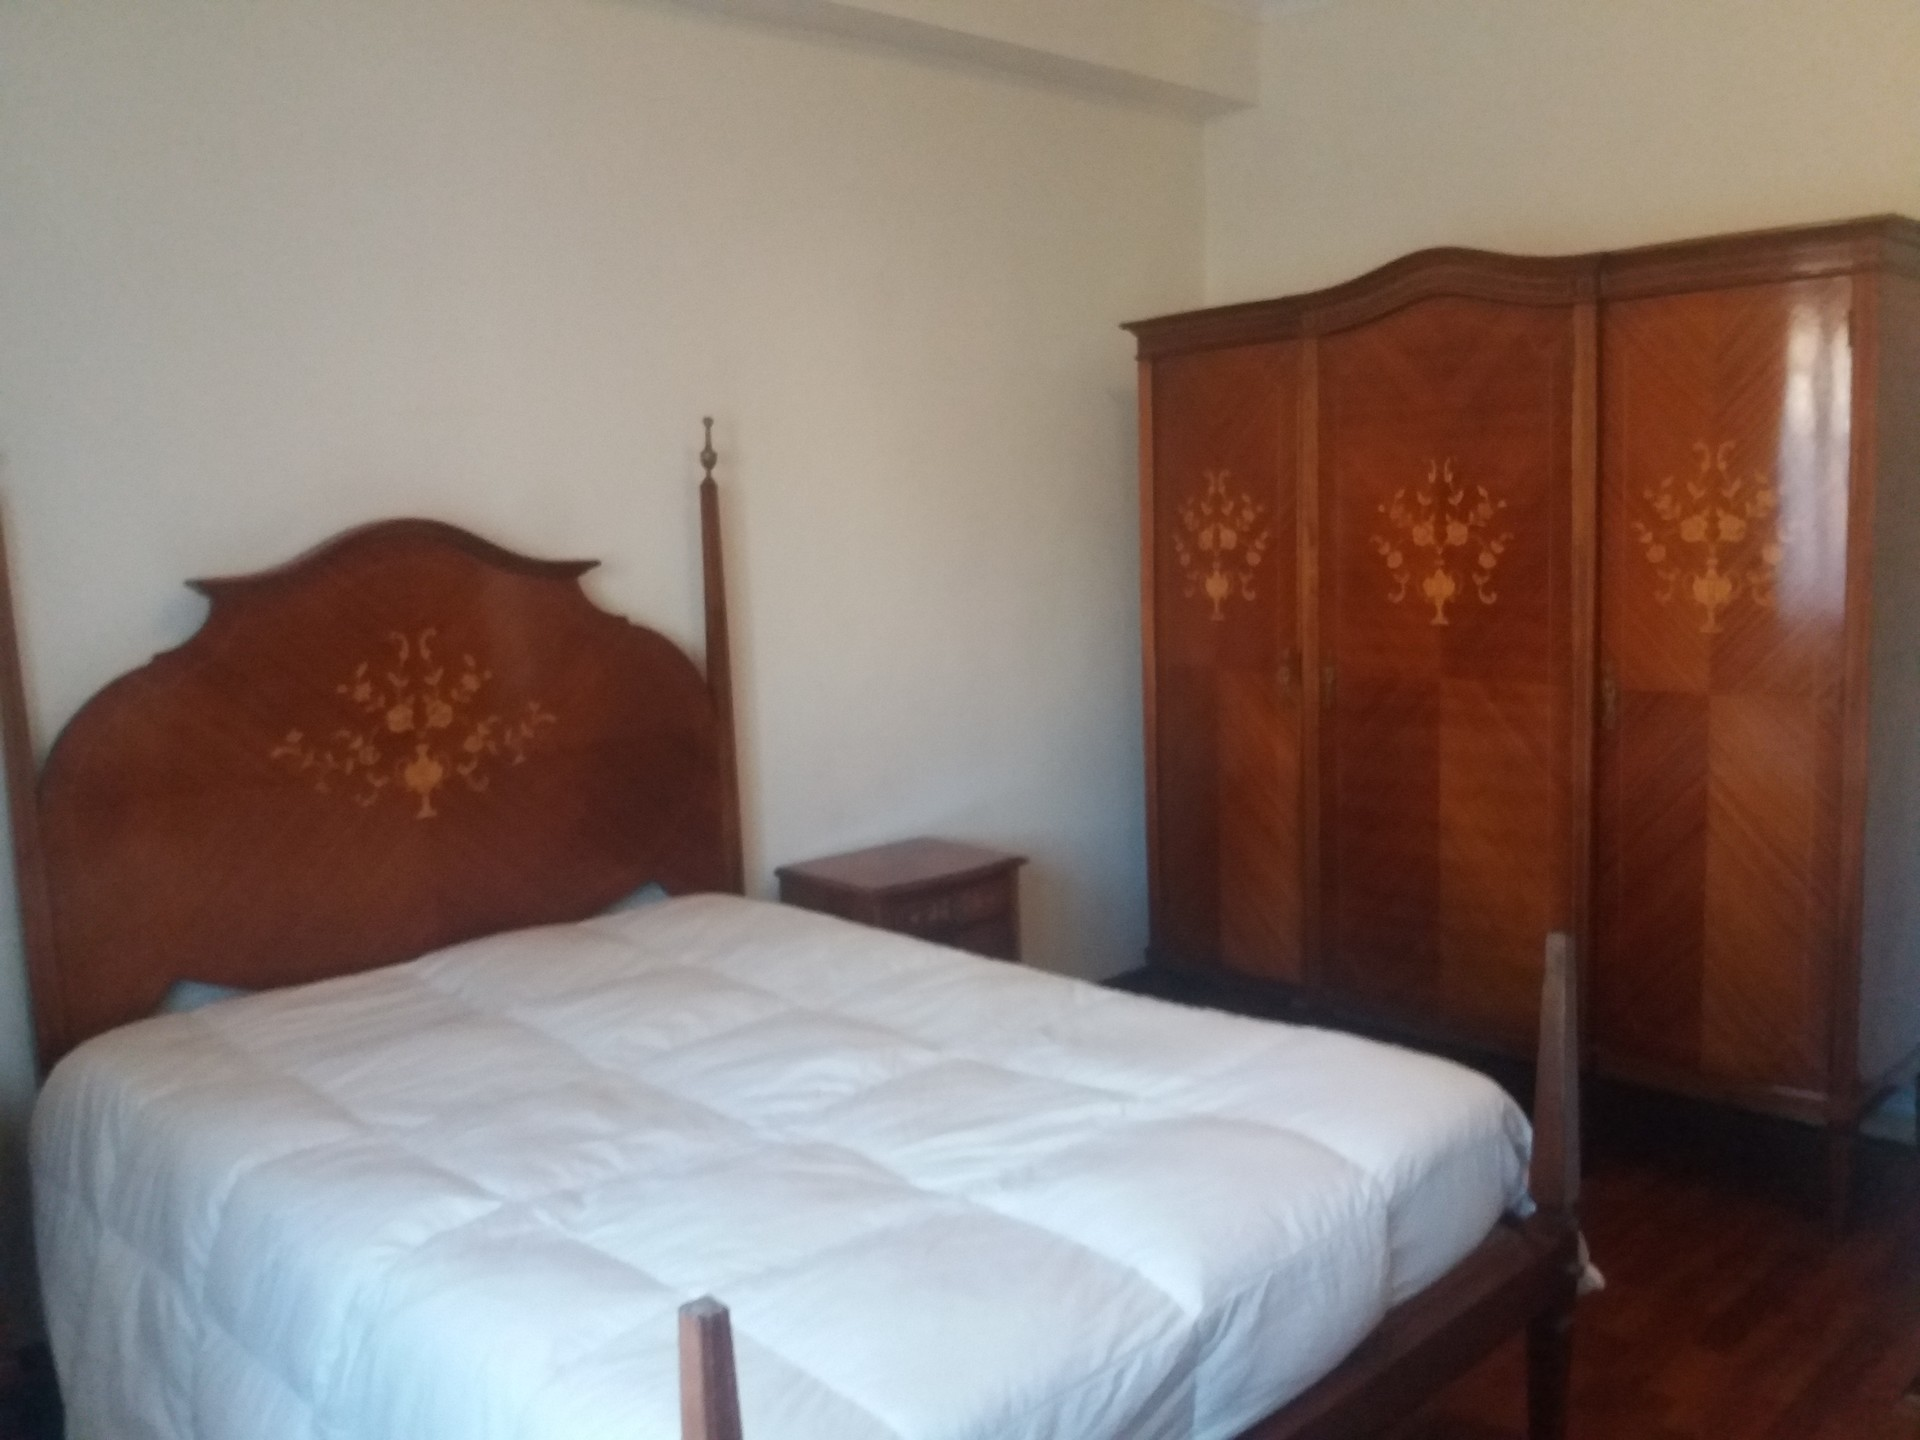 room-in-the-historic-center-of-aveiro-and-10-minutes-walk-from-the-university-5d63e1a6b00034705f814f1041240032